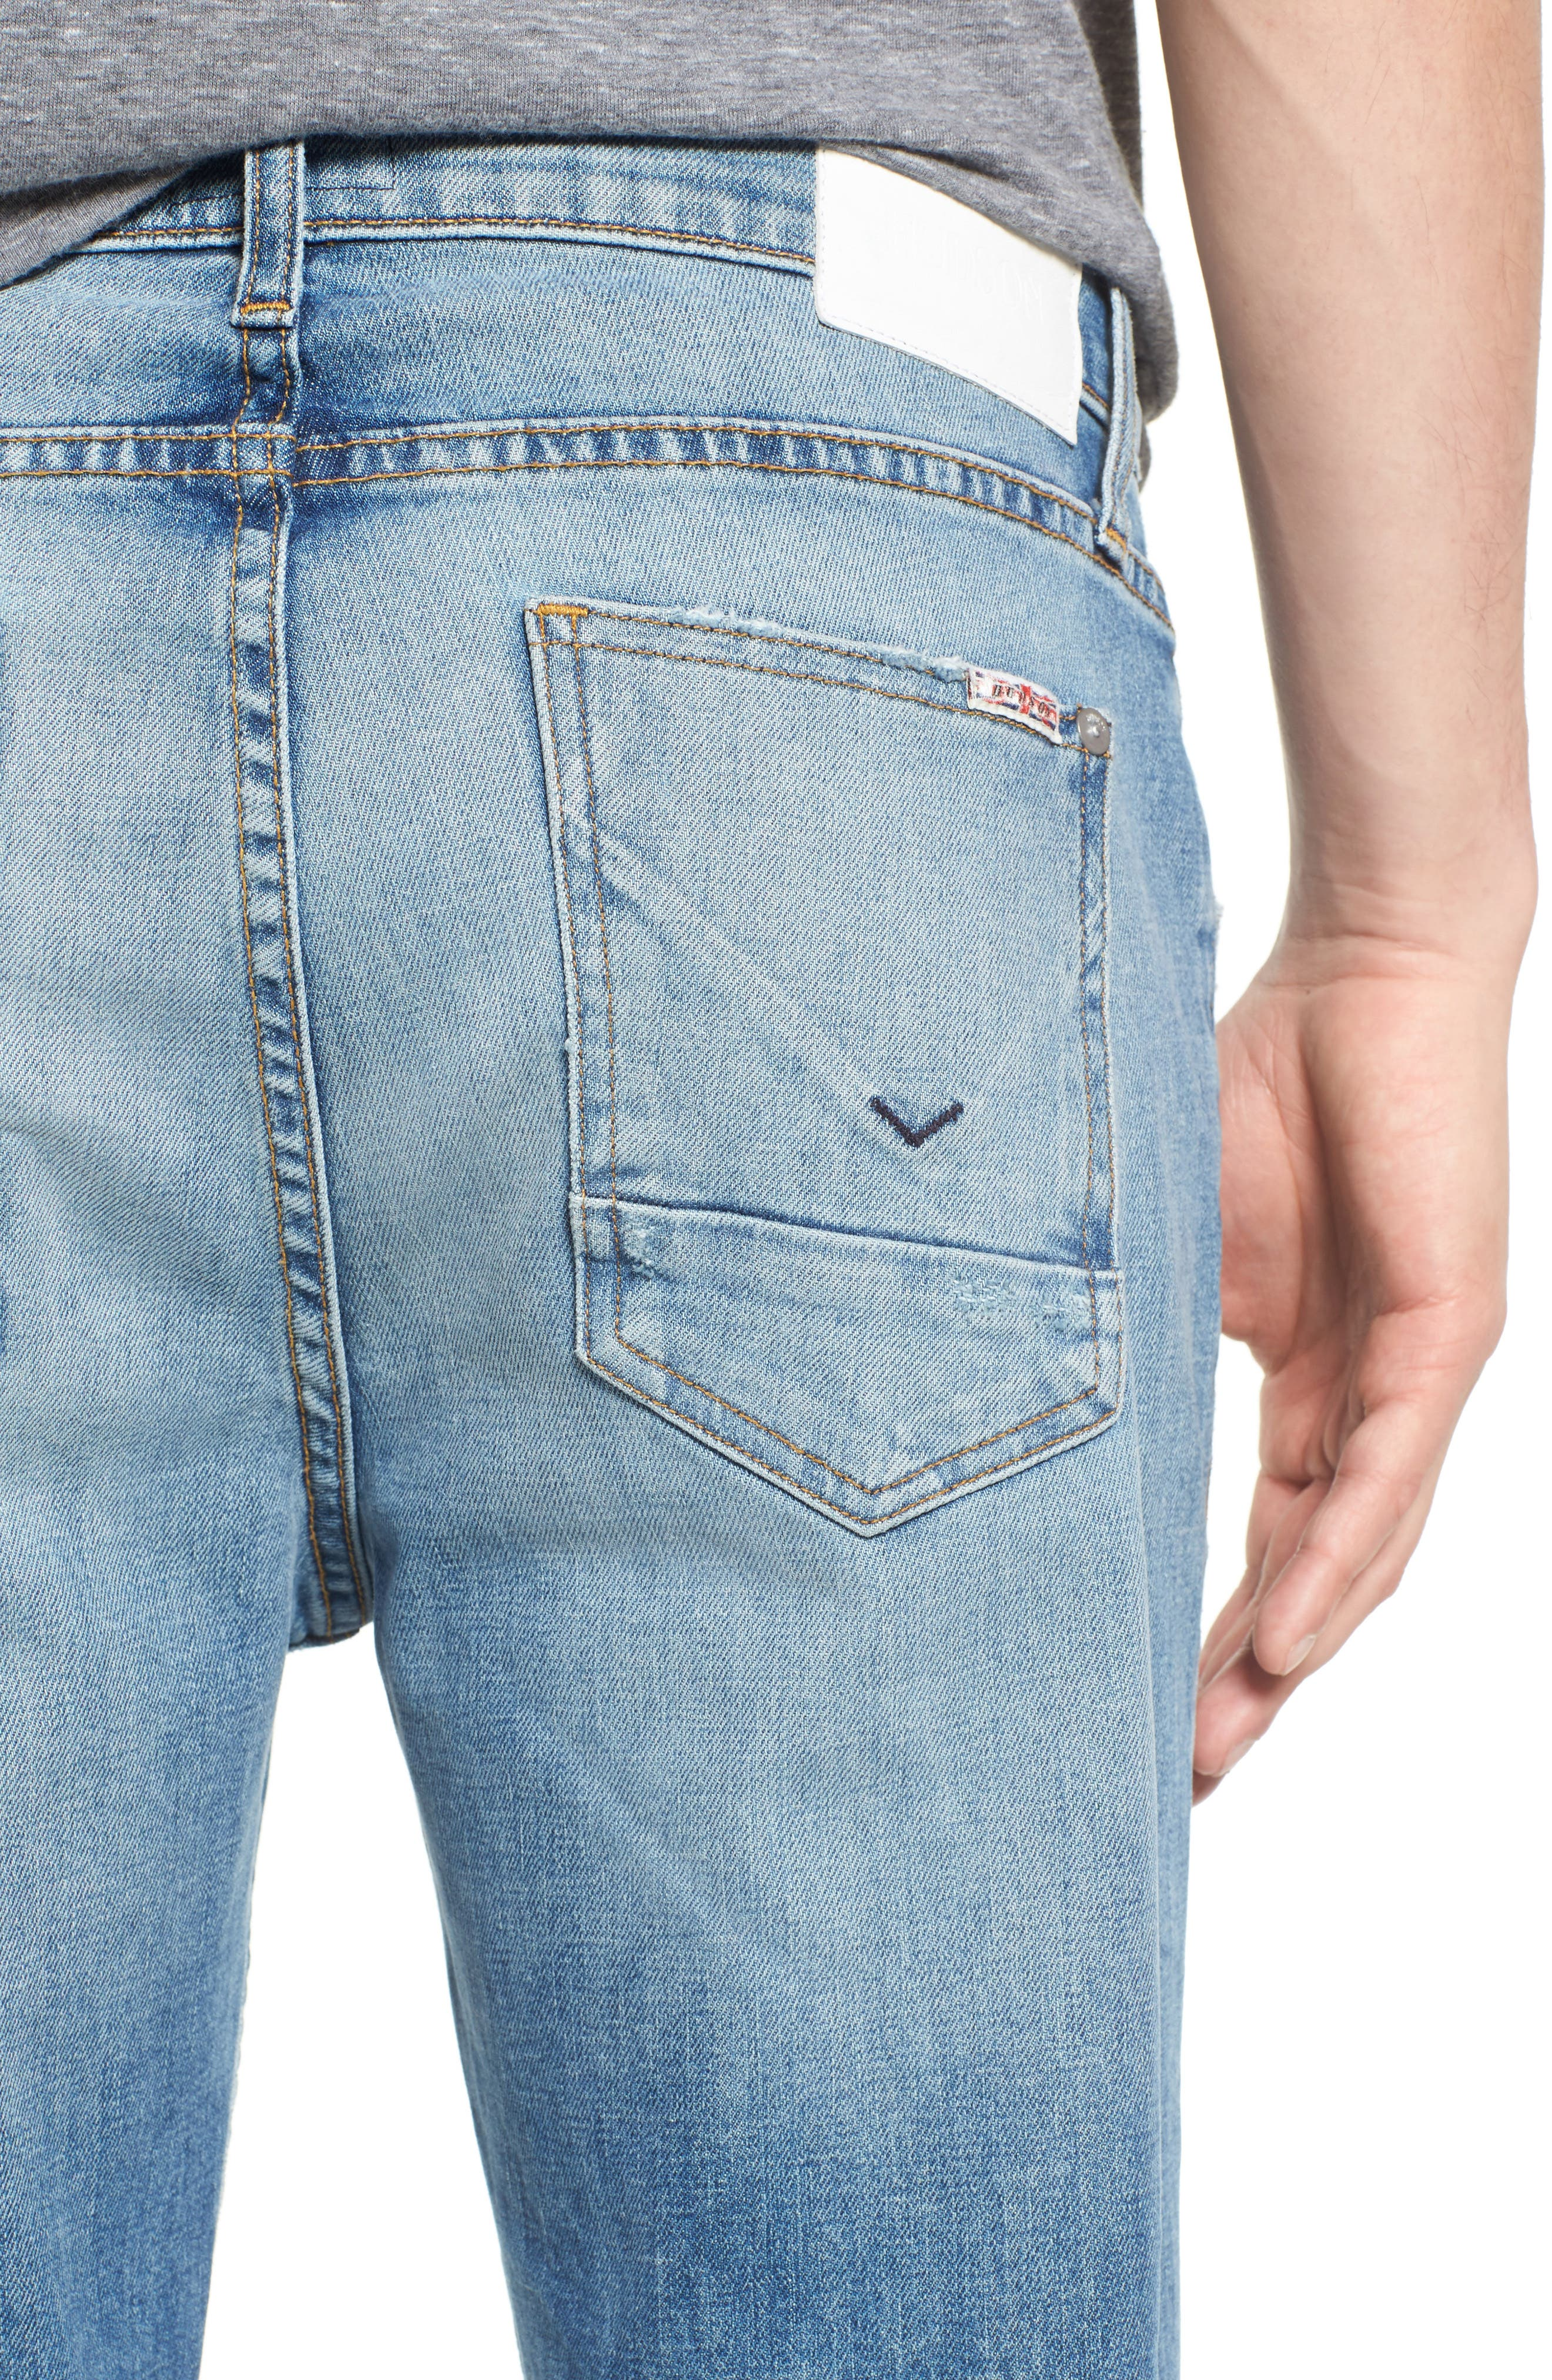 Sator Skinny Fit Jeans,                             Alternate thumbnail 4, color,                             Banned